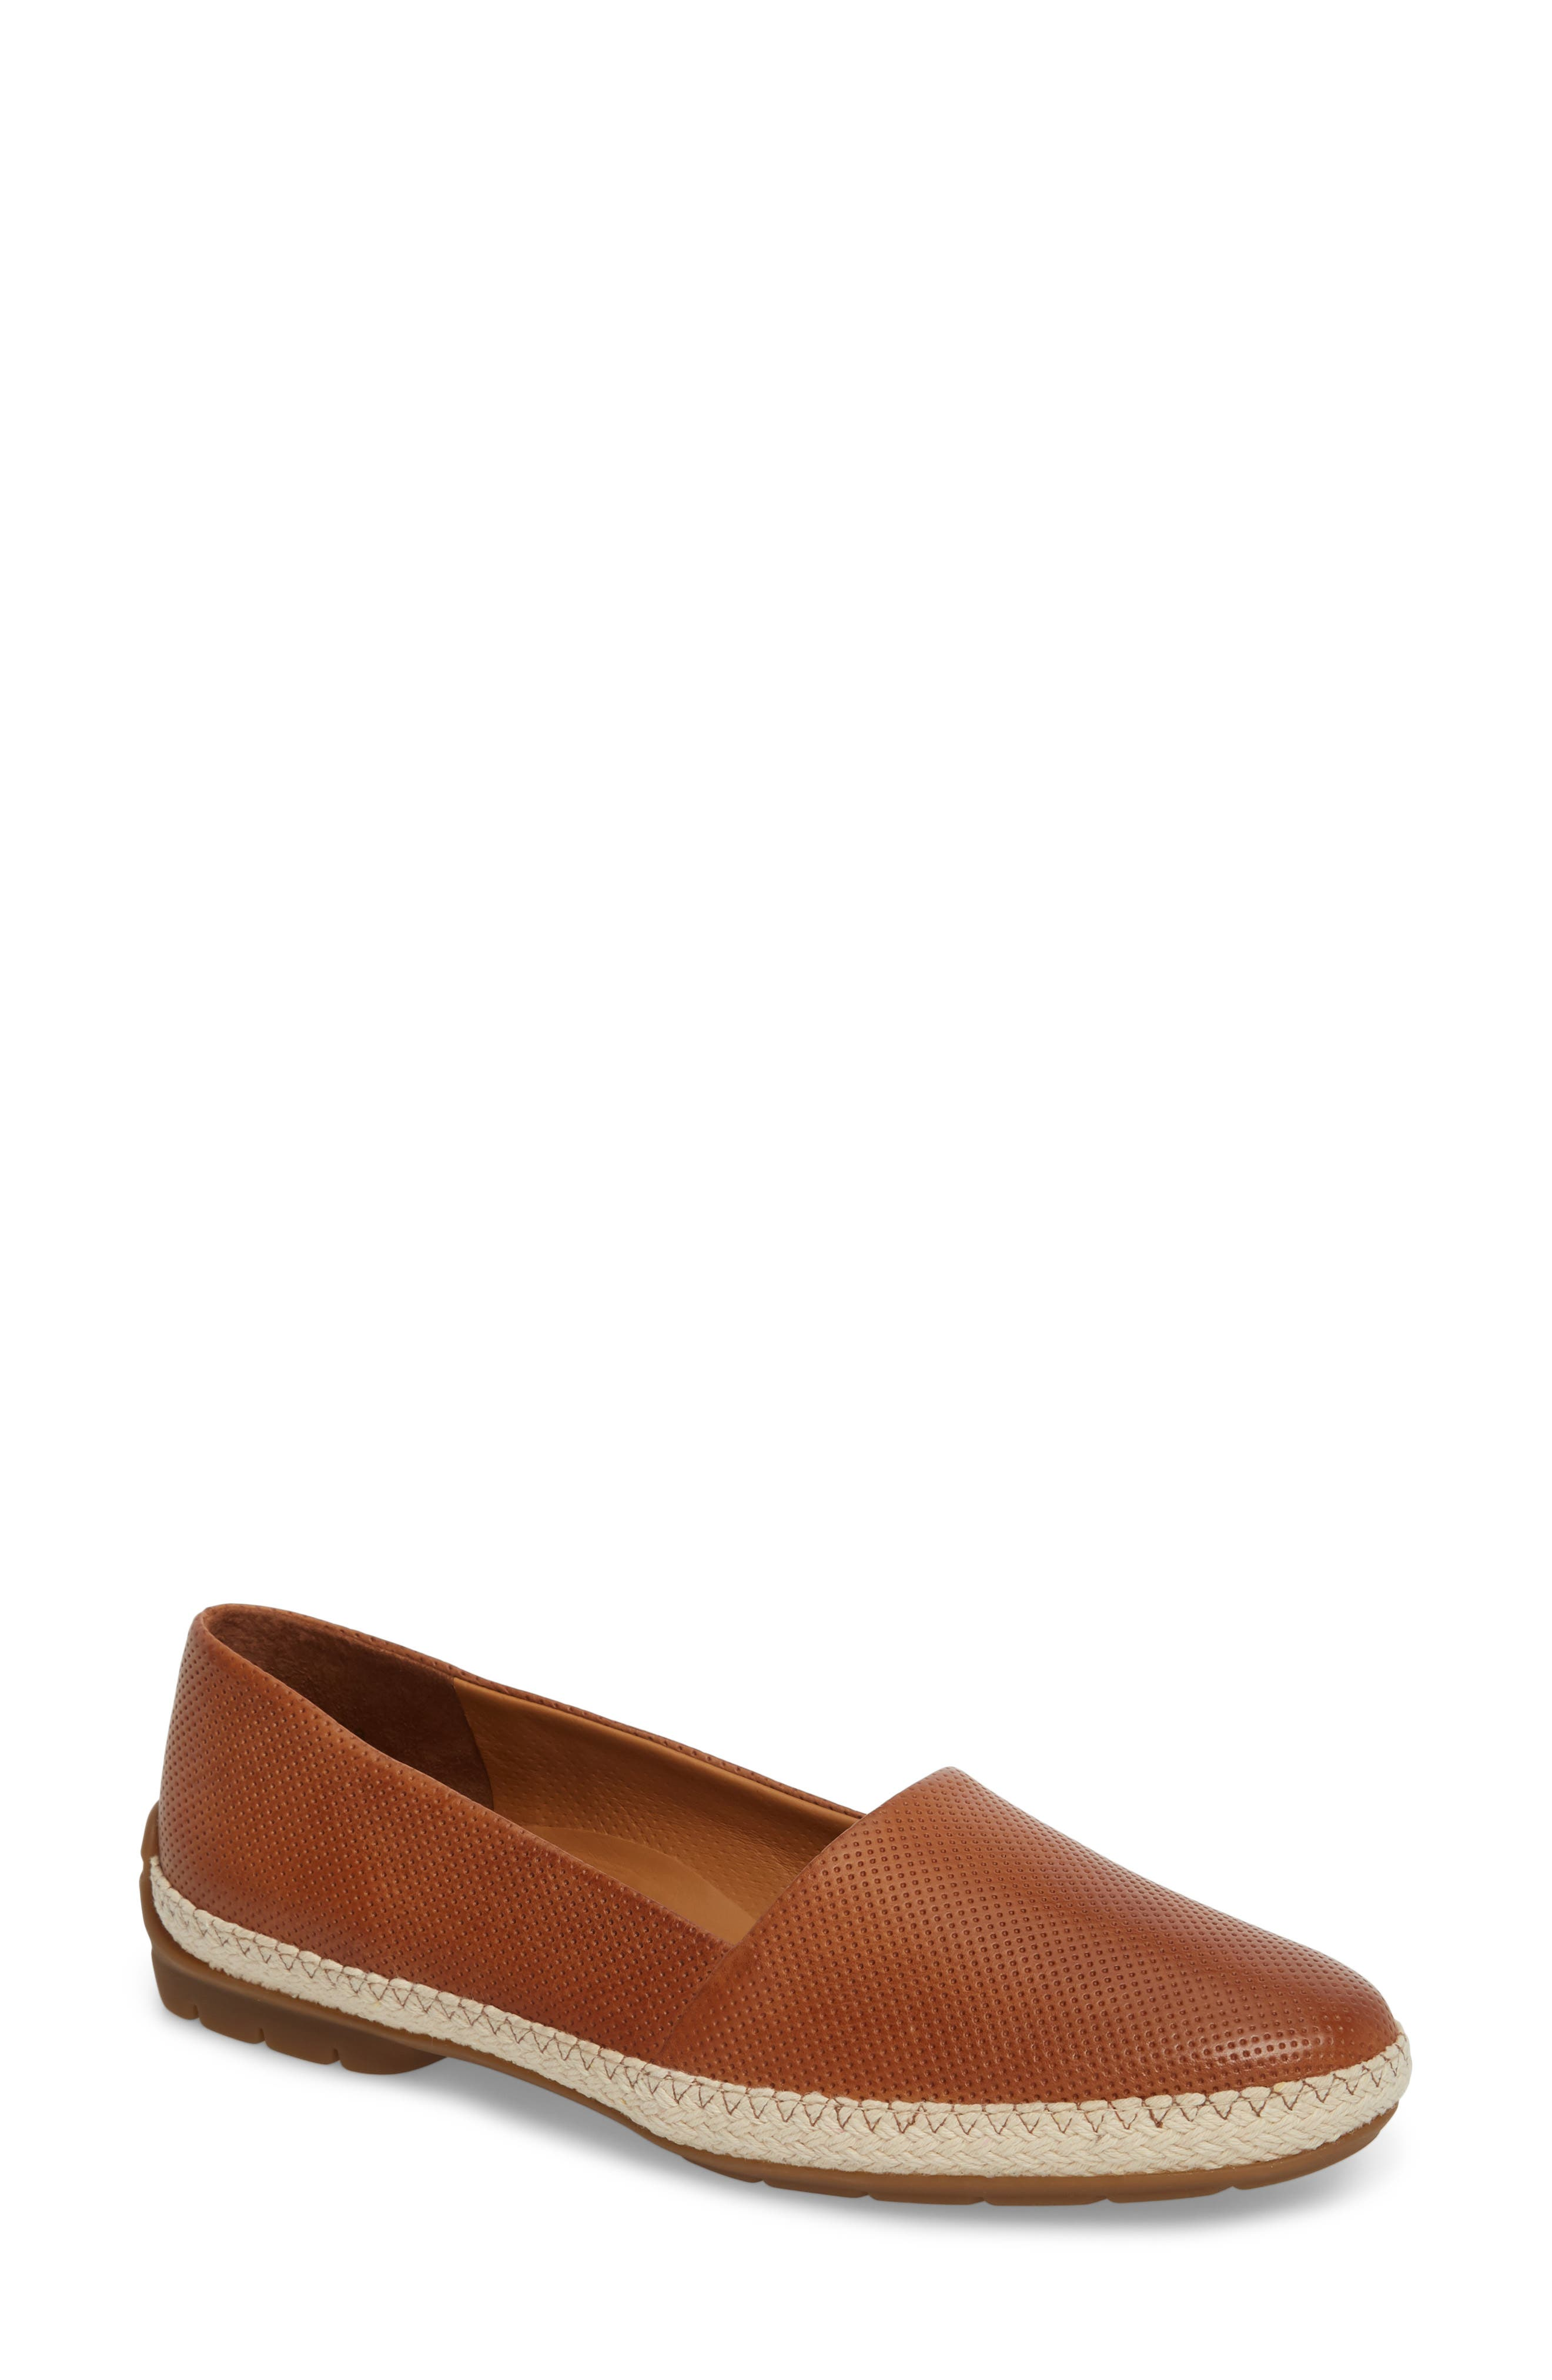 Paul Green Slip-on shoes Pick A Best Online Discount With Mastercard Discount In China Cheap Sale The Cheapest 1JTrtHtR9